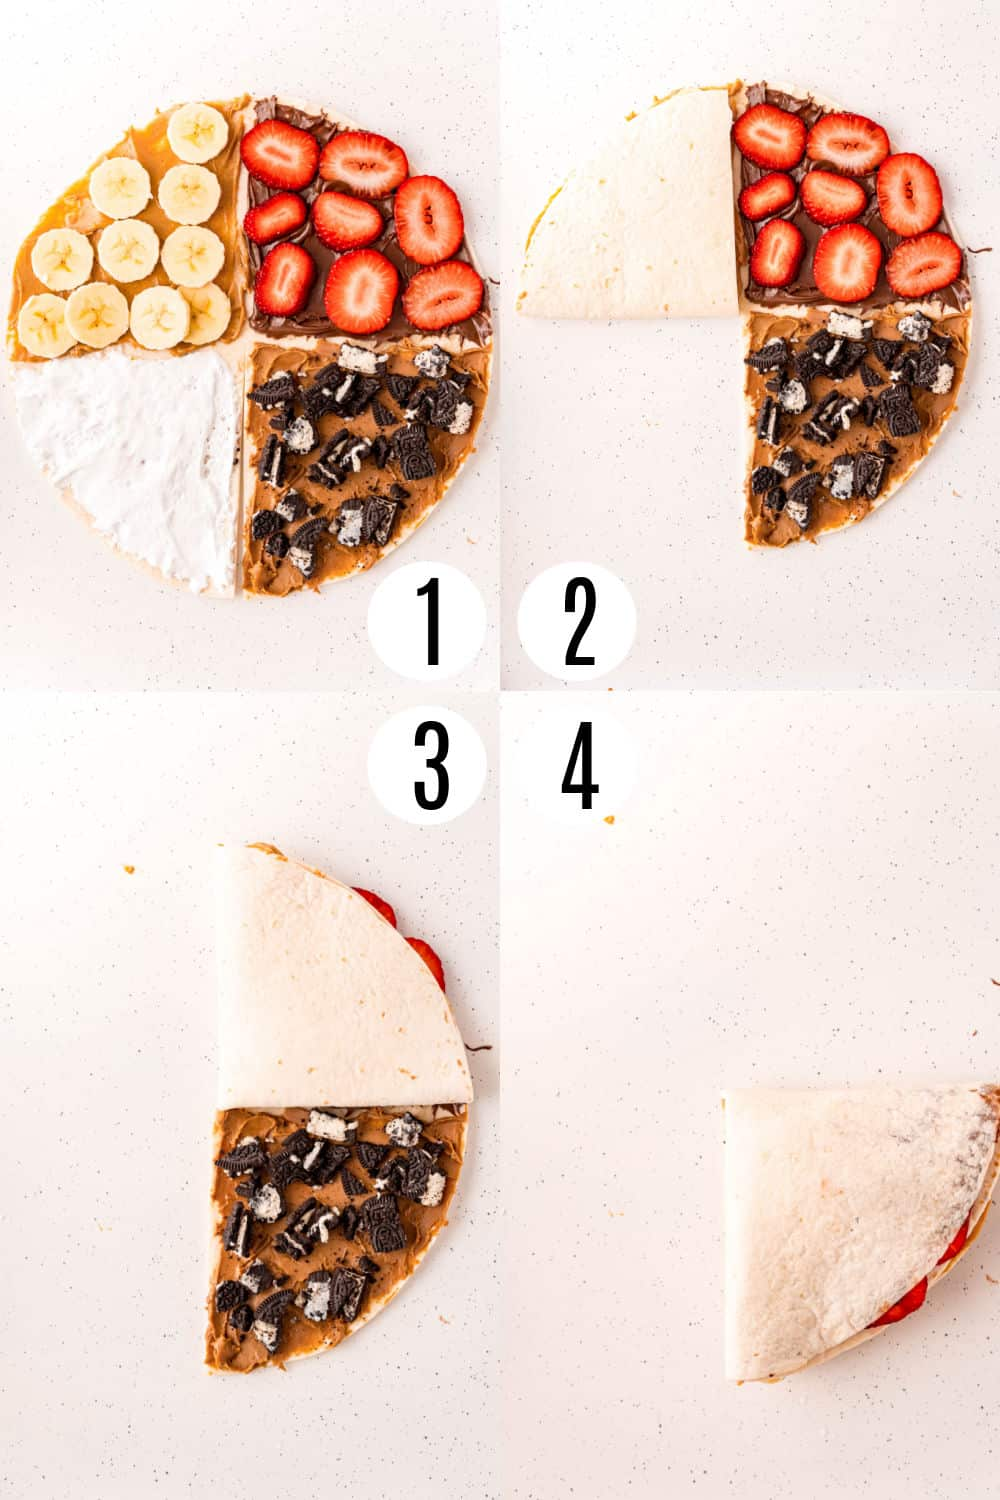 Step by step photos showing how to cut and fold a tortilla wrap.